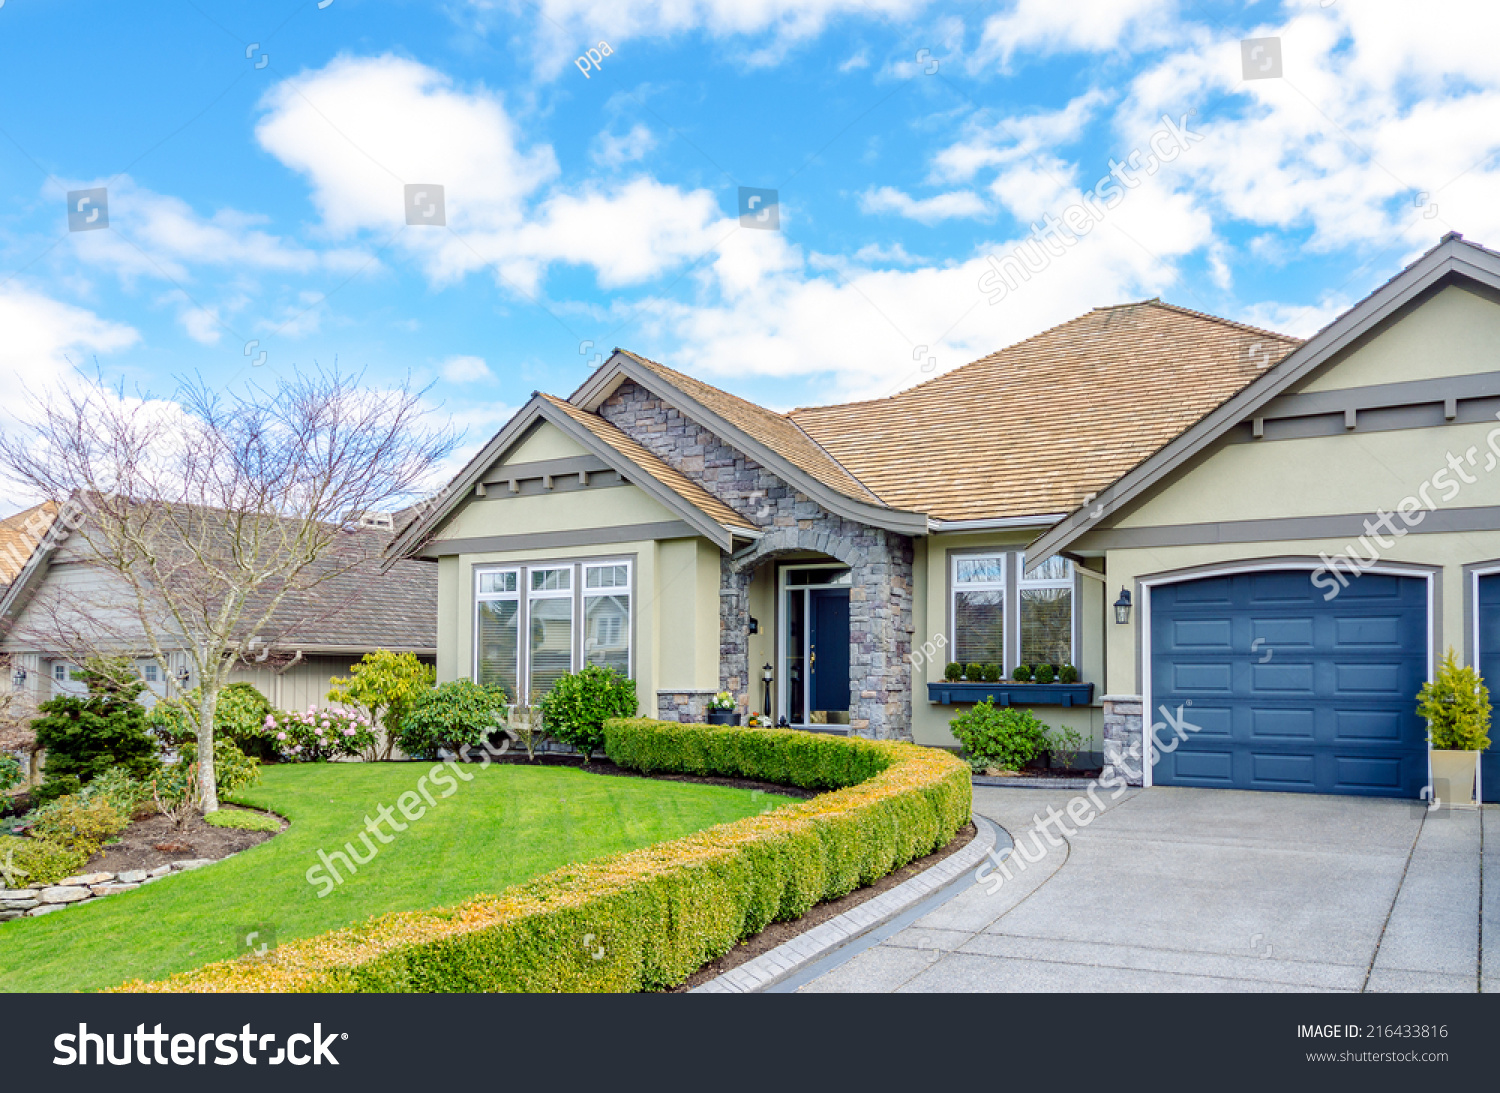 Entrance Luxury House Beautiful Landscaping On Stock Photo Edit Now